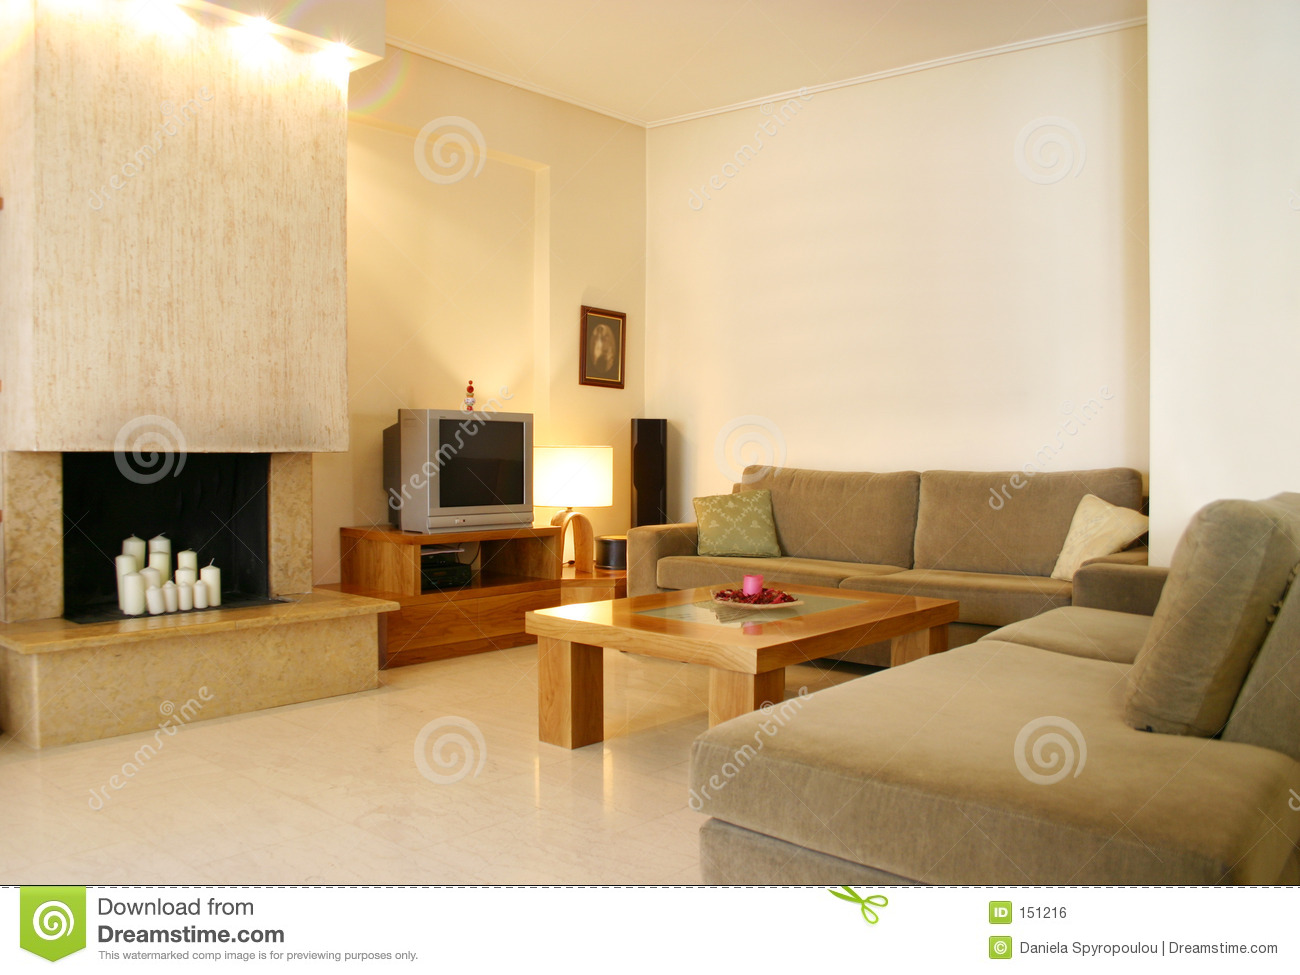 home interior design stock photo image of modern decorating 151216